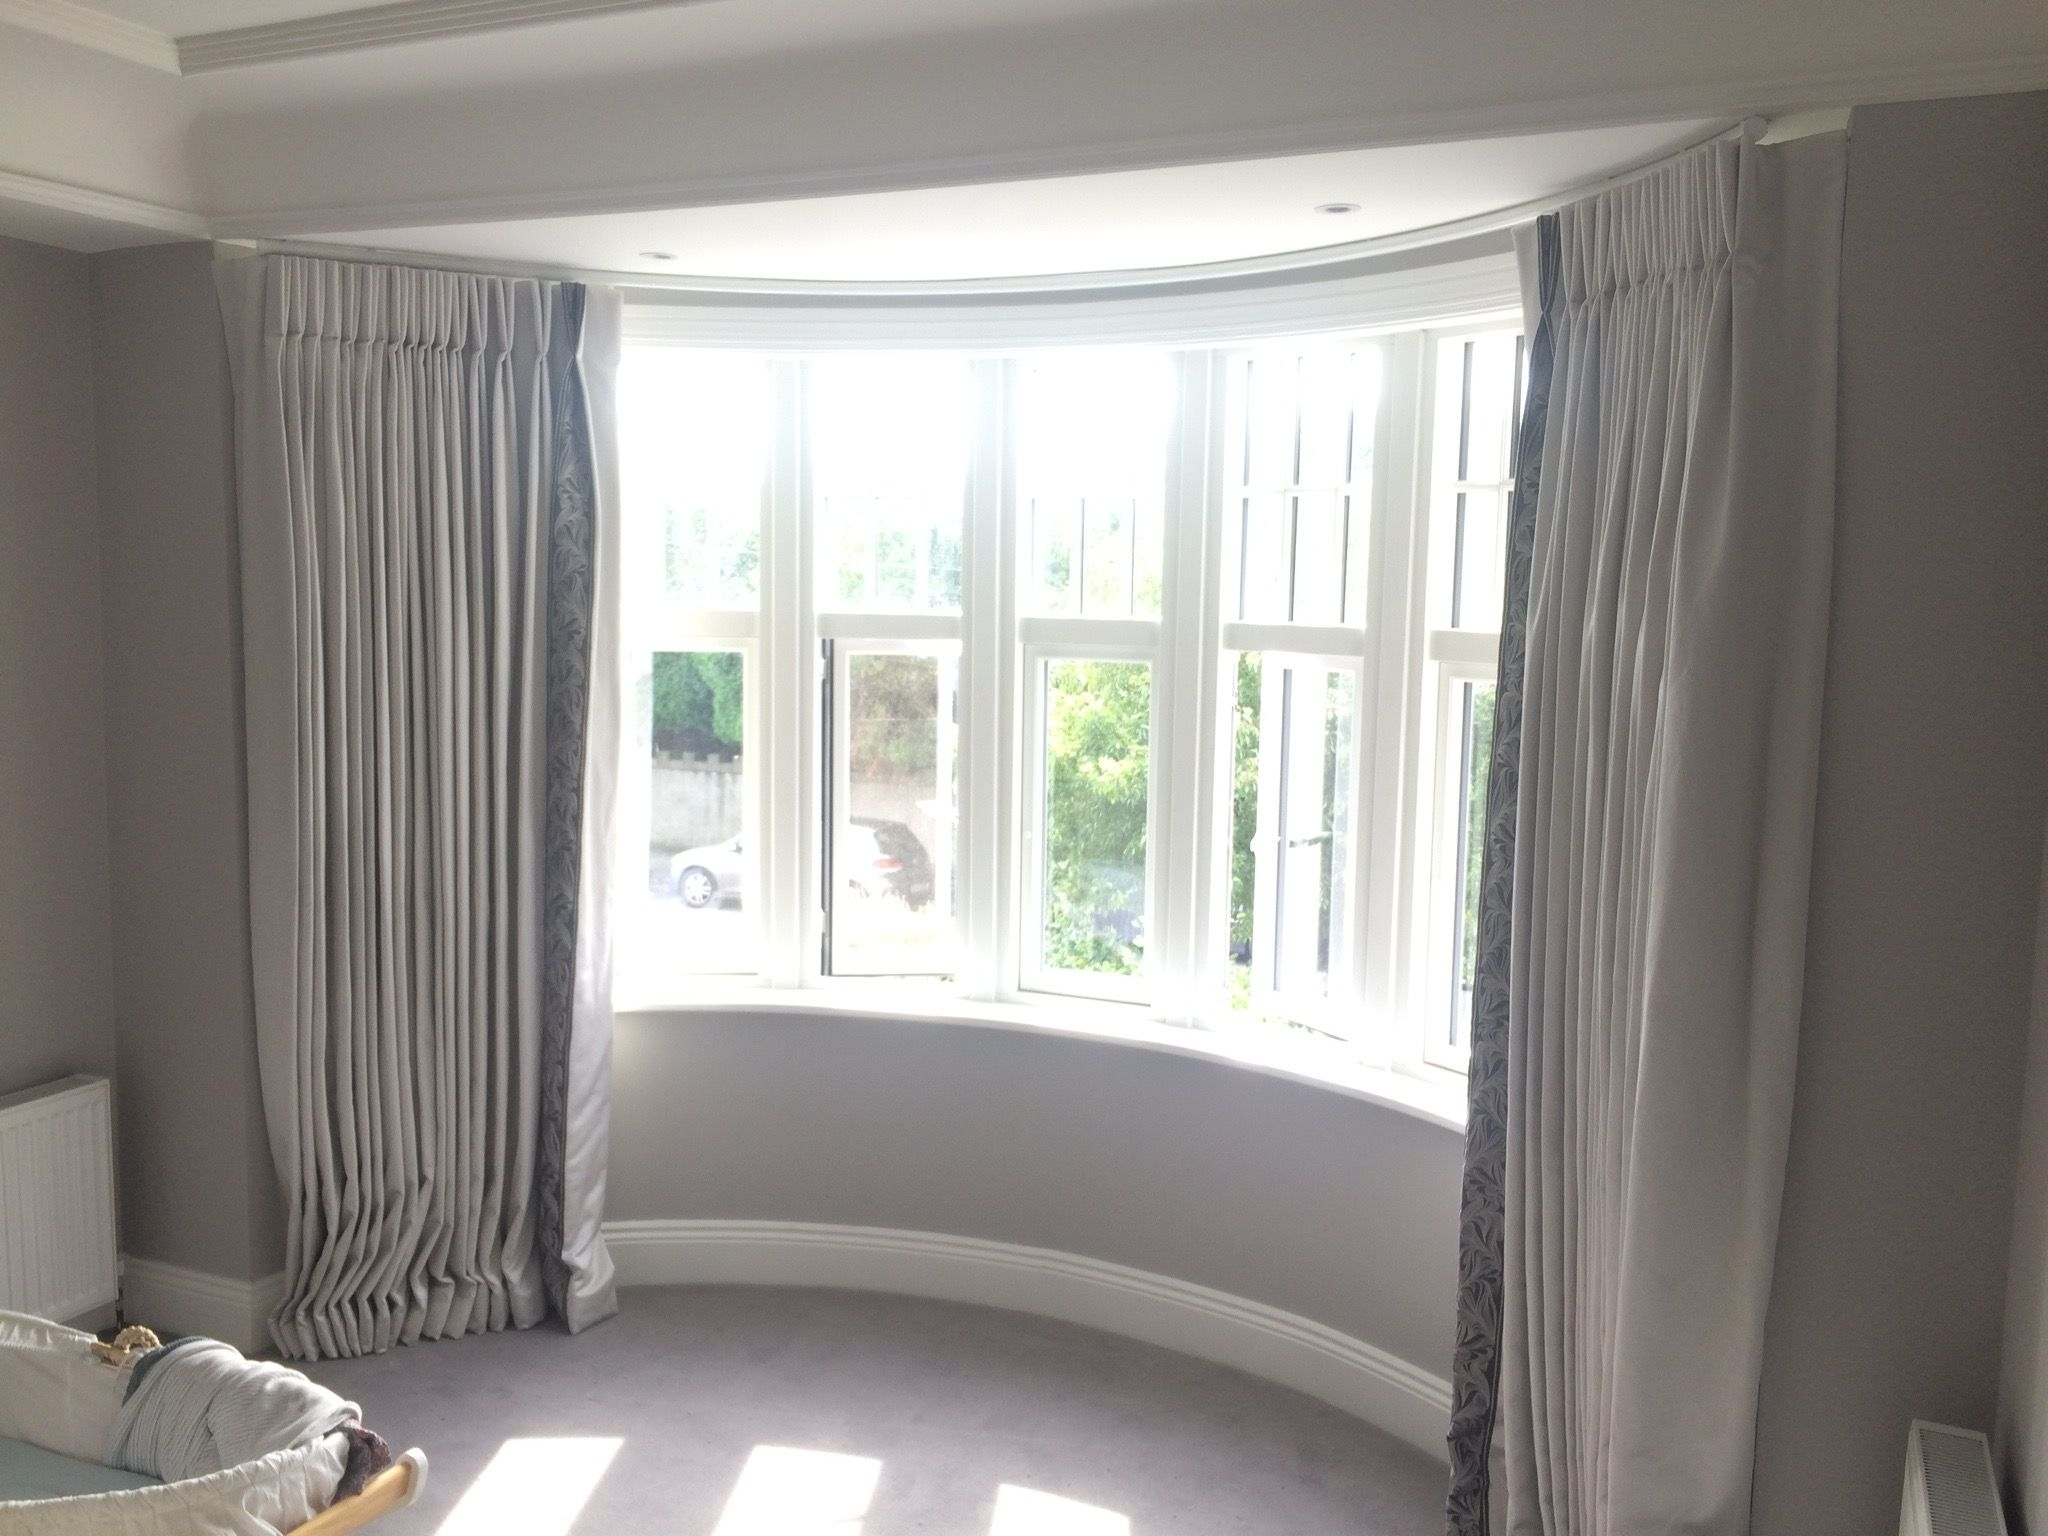 Curved Bedroom Curtain Bay Window With Zoffany Trim Small Window Curtains Bay Window Curtains Bay Window